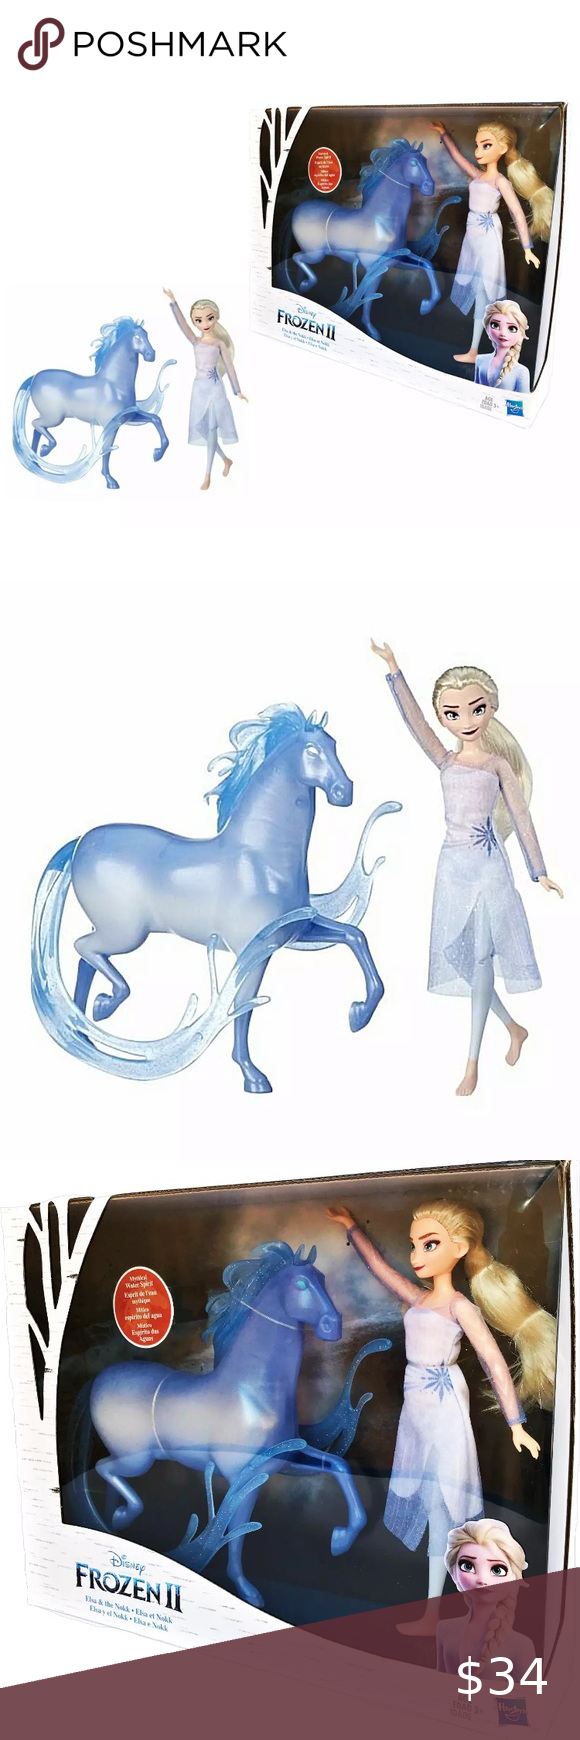 Disney E5516 FrozenElsa FashionDoll and NokkFigure NEW Elsa & The Nokk Disney Frozen II Mythical water Spirit See Images  Thank You for Your Purchase. Disney Toys Action Figures & Playsets